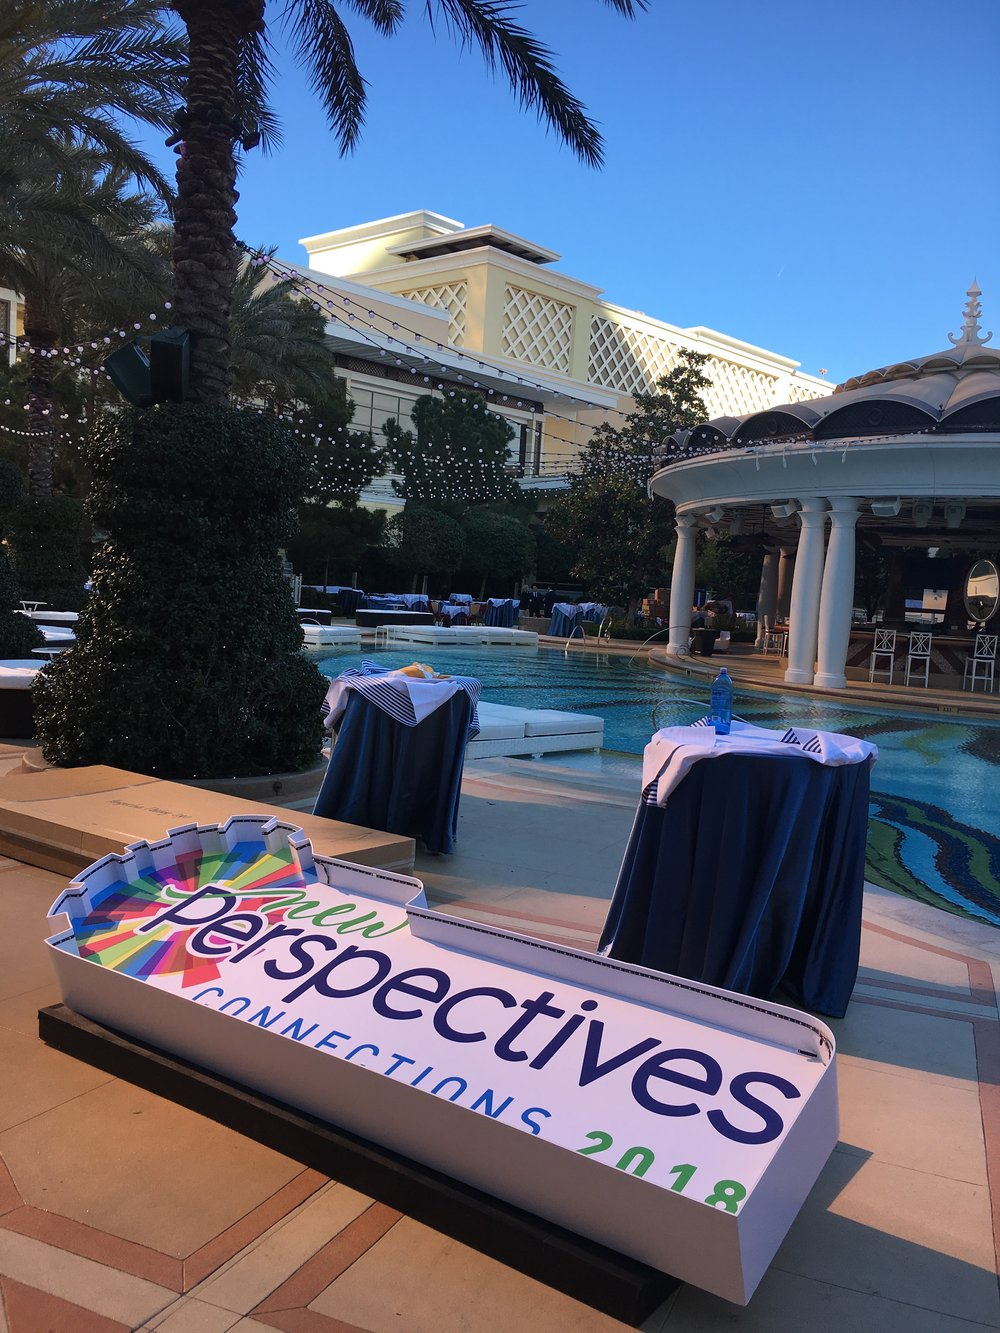 vegas pool event design company.jpg